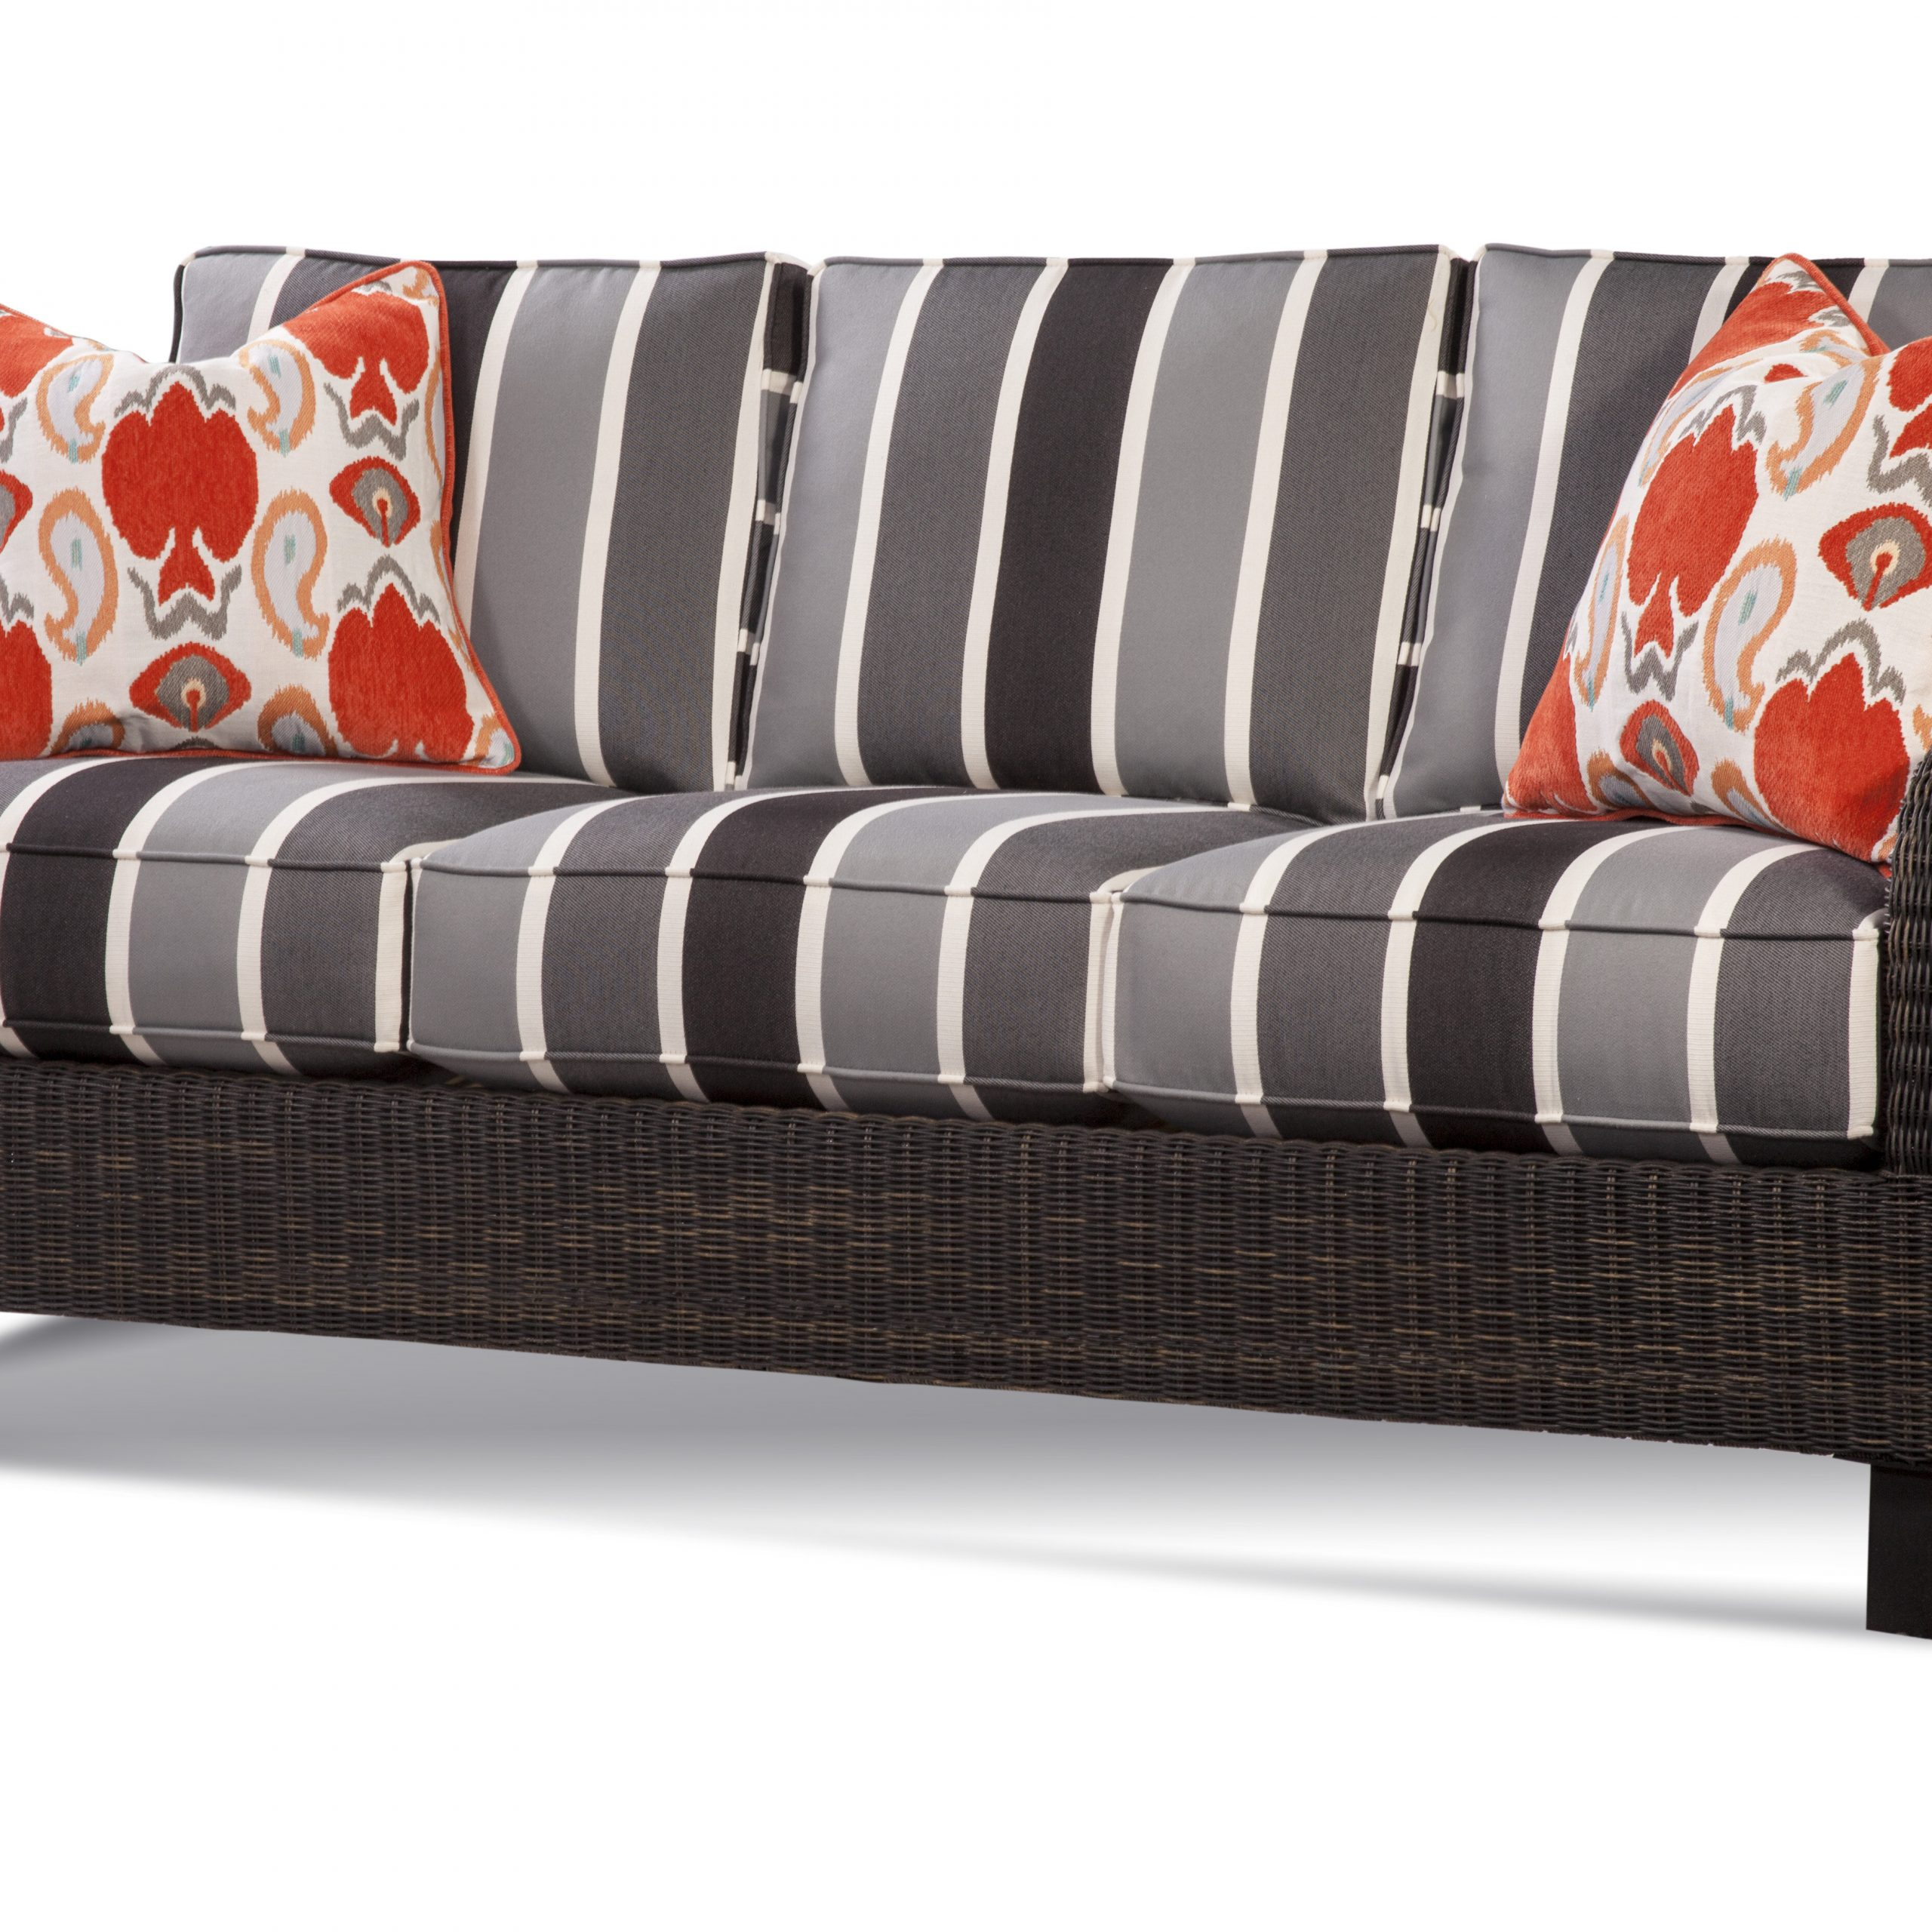 Tangier Patio Sofa With Cushions For Well Known Astrid Wicker Patio Sofas With Cushions (View 19 of 25)